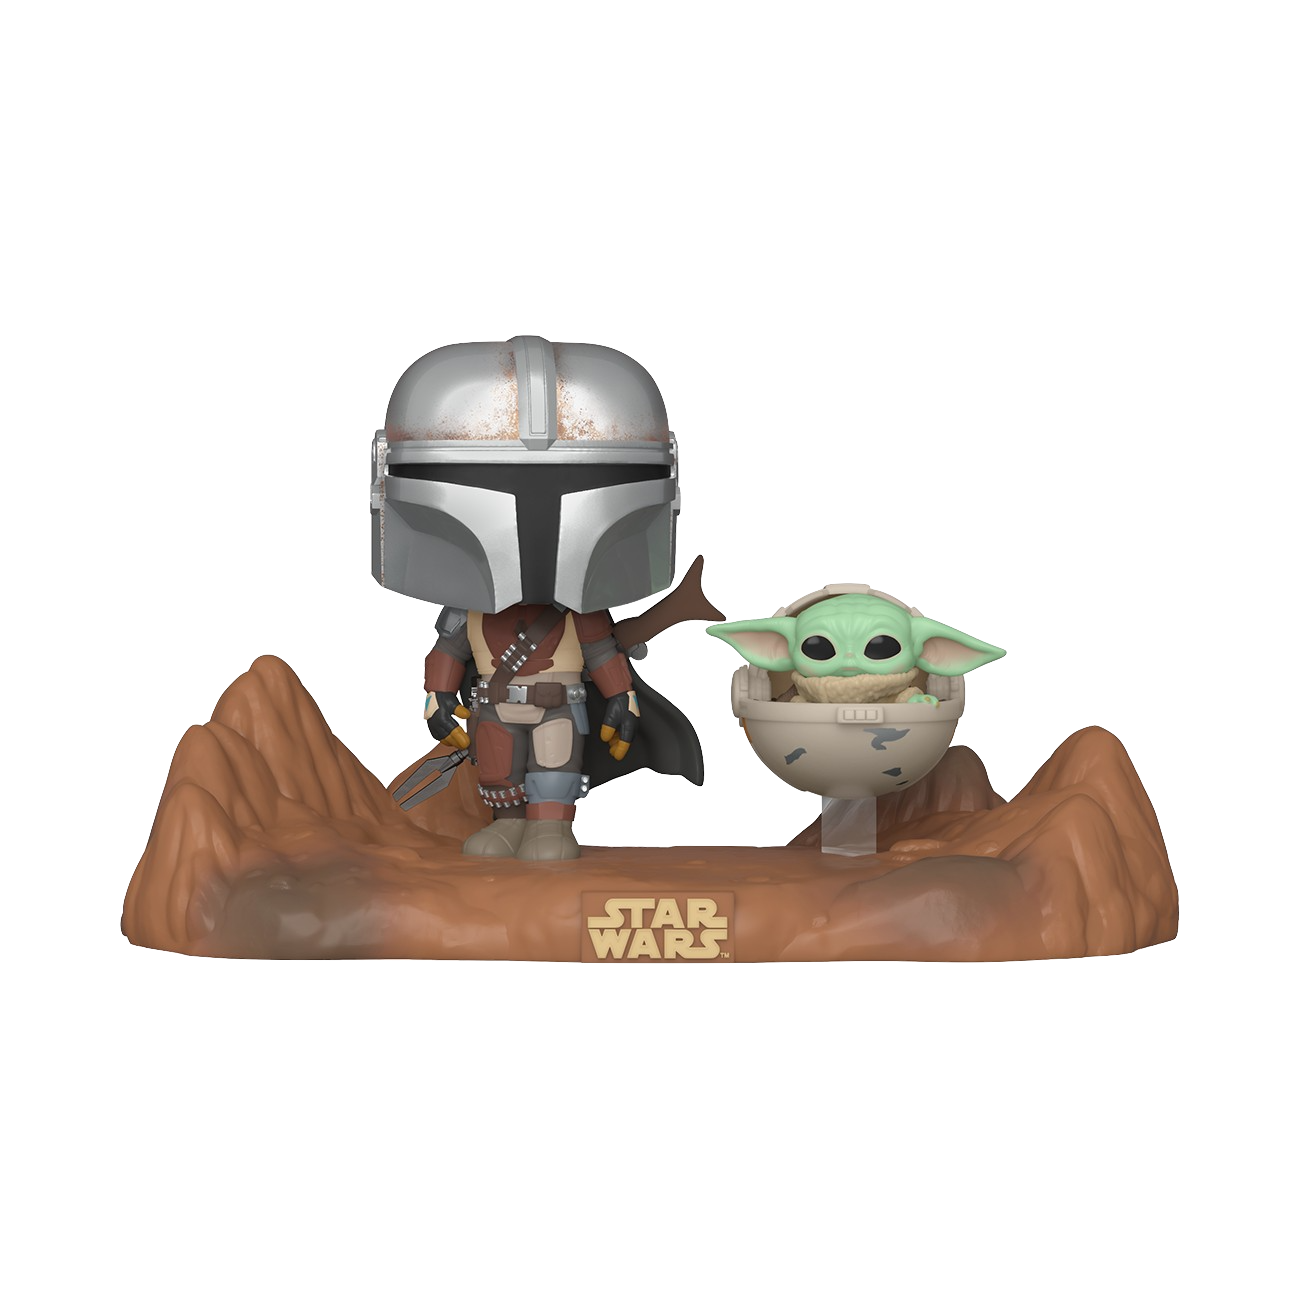 funko-movie-moments-star-wars-the-mandalorian-the-mandalorian-with-the-child-toyslife